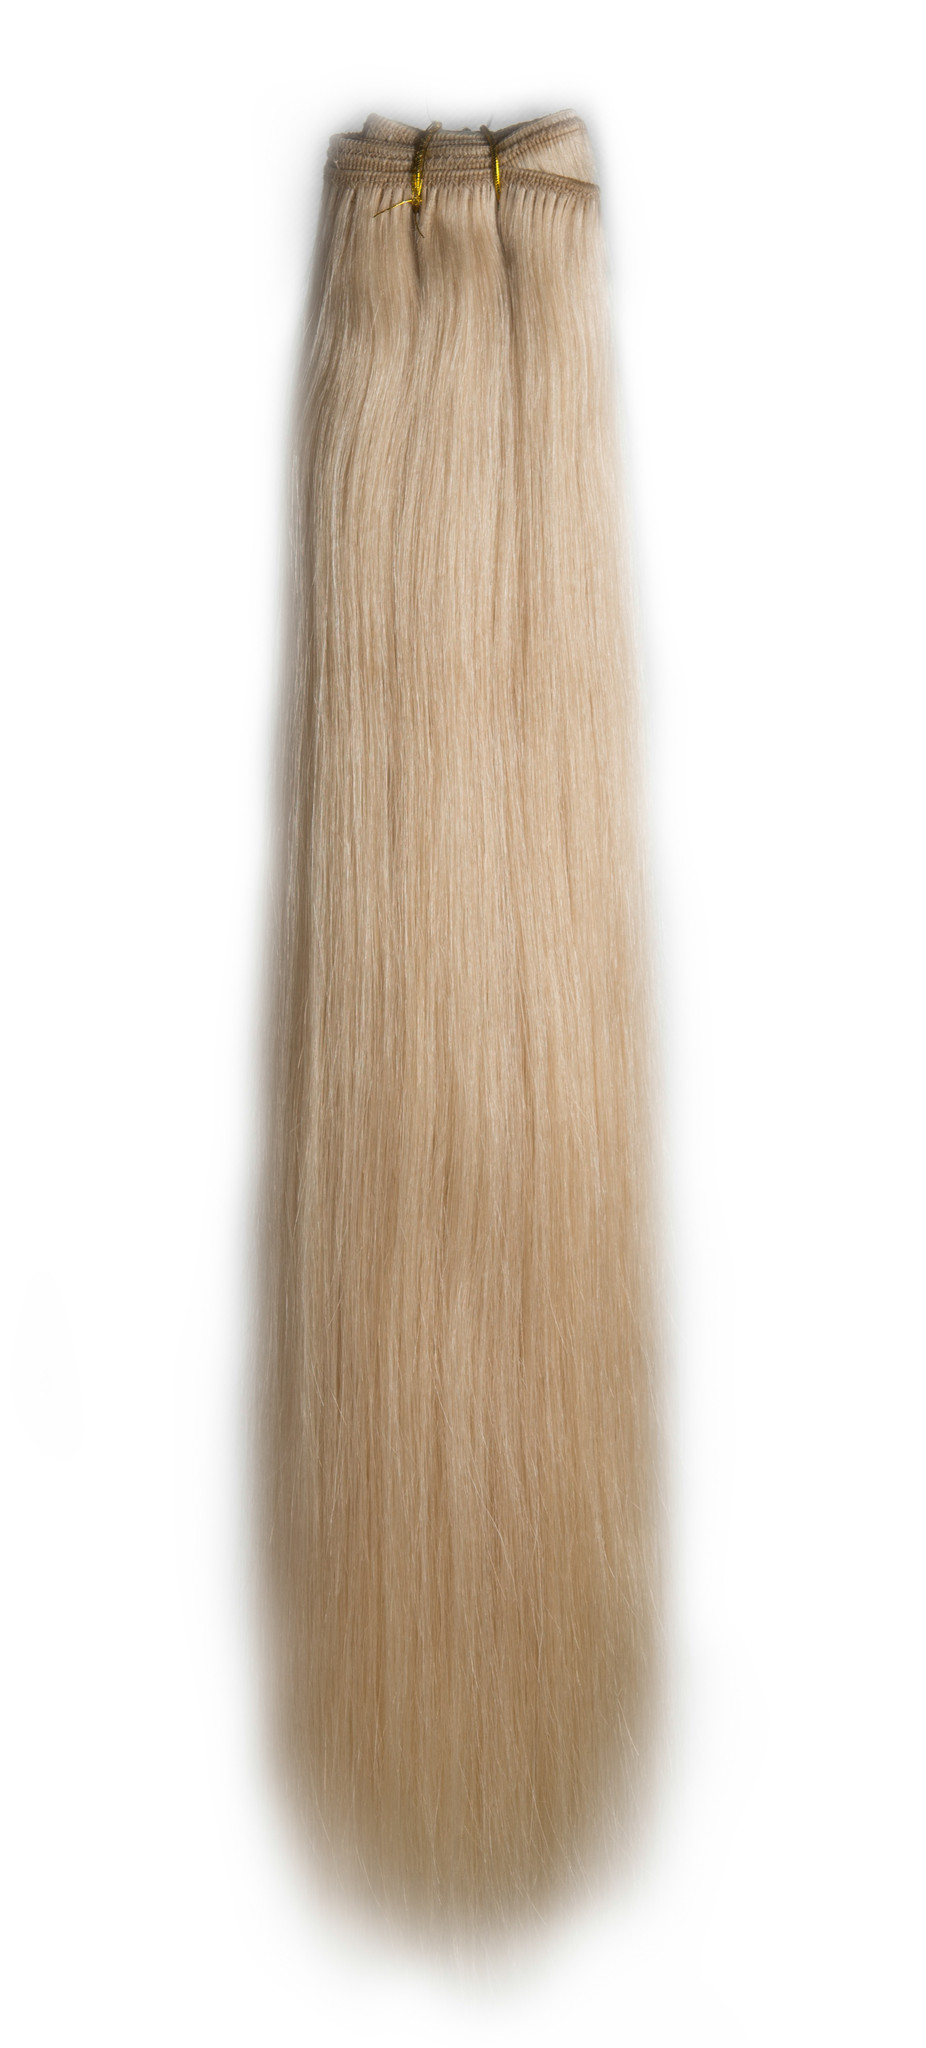 SilverFox Weave - #613 Light Blonde